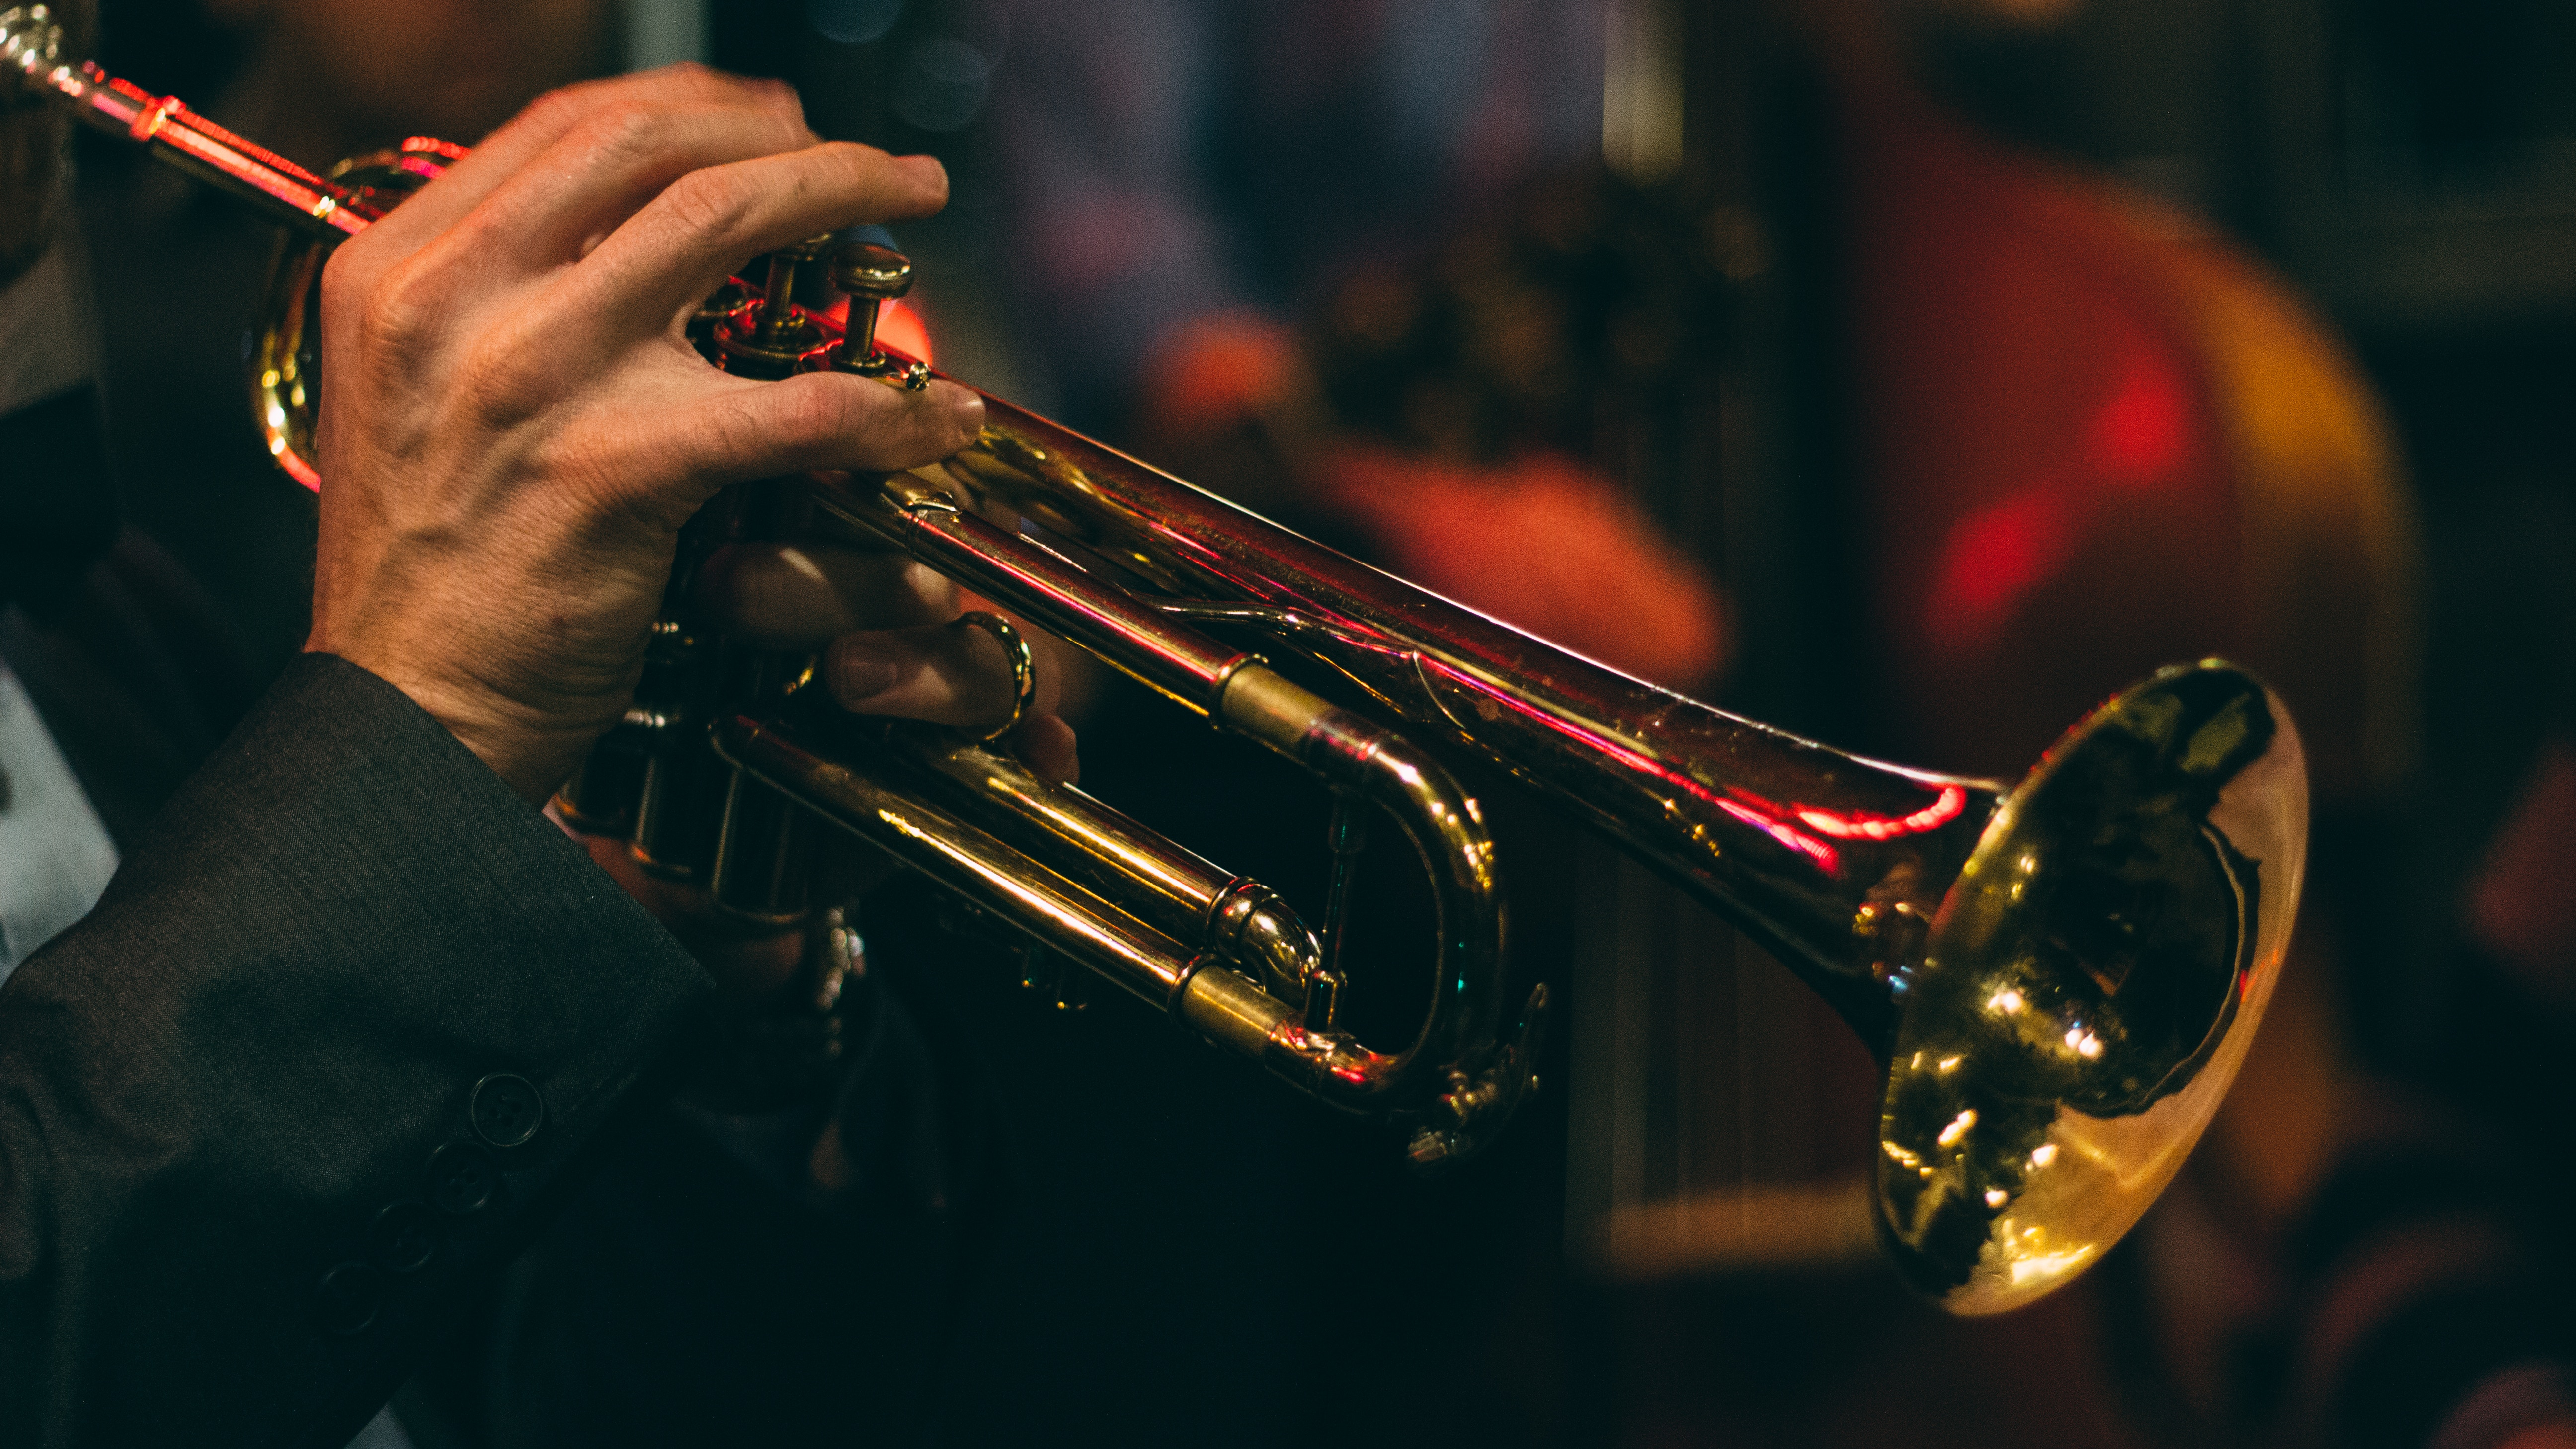 chris bair 453935 unsplash trumpet